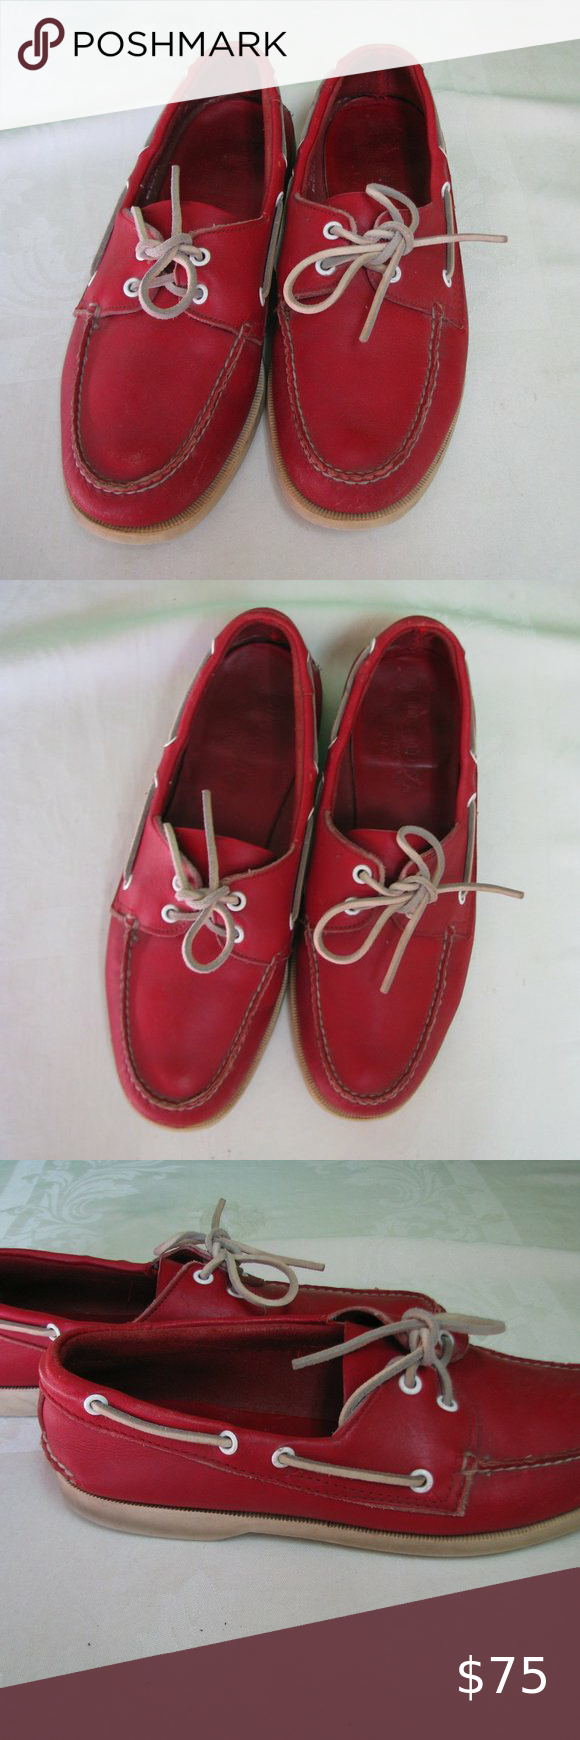 Vintage Austin Reed Red Leather Boat Shoes Leather Boat Shoes Boat Shoes Vintage Austin